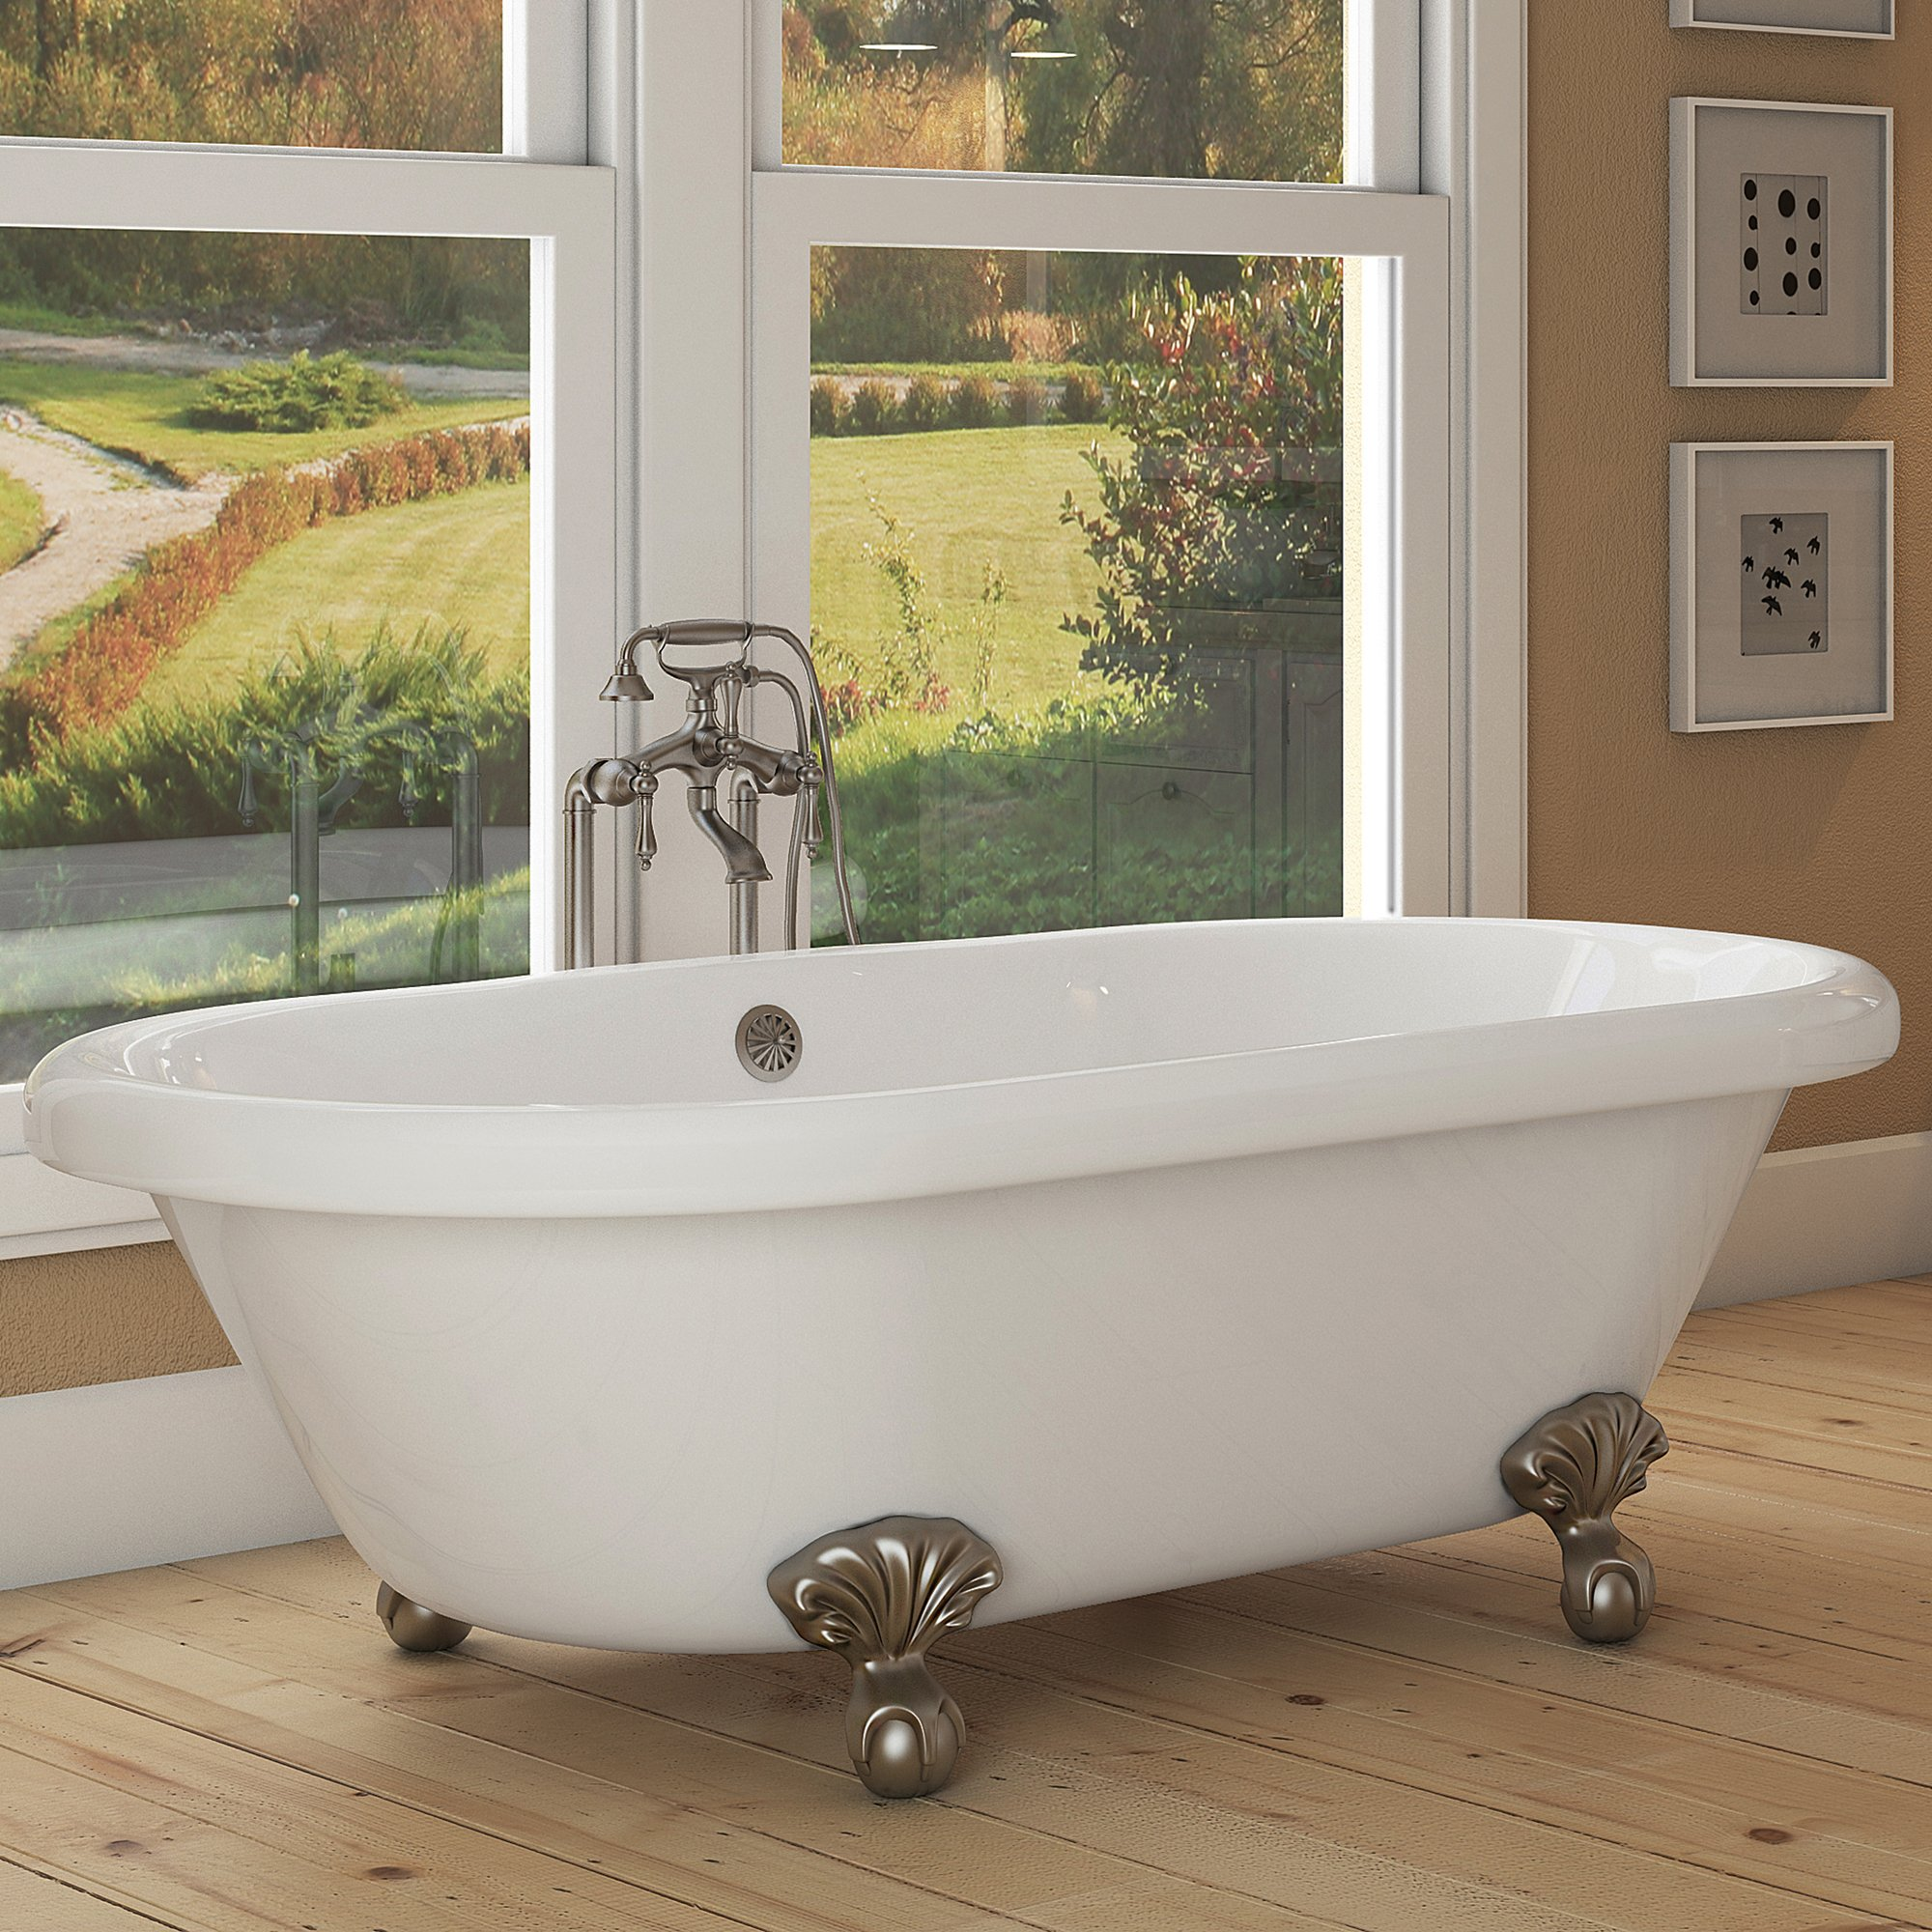 Luxury 72 inch Large Clawfoot Tub with Vintage Tub Design in White, Includes Brushed Nickel Ball and Claw Feet and Drain, From The Northfield Collection